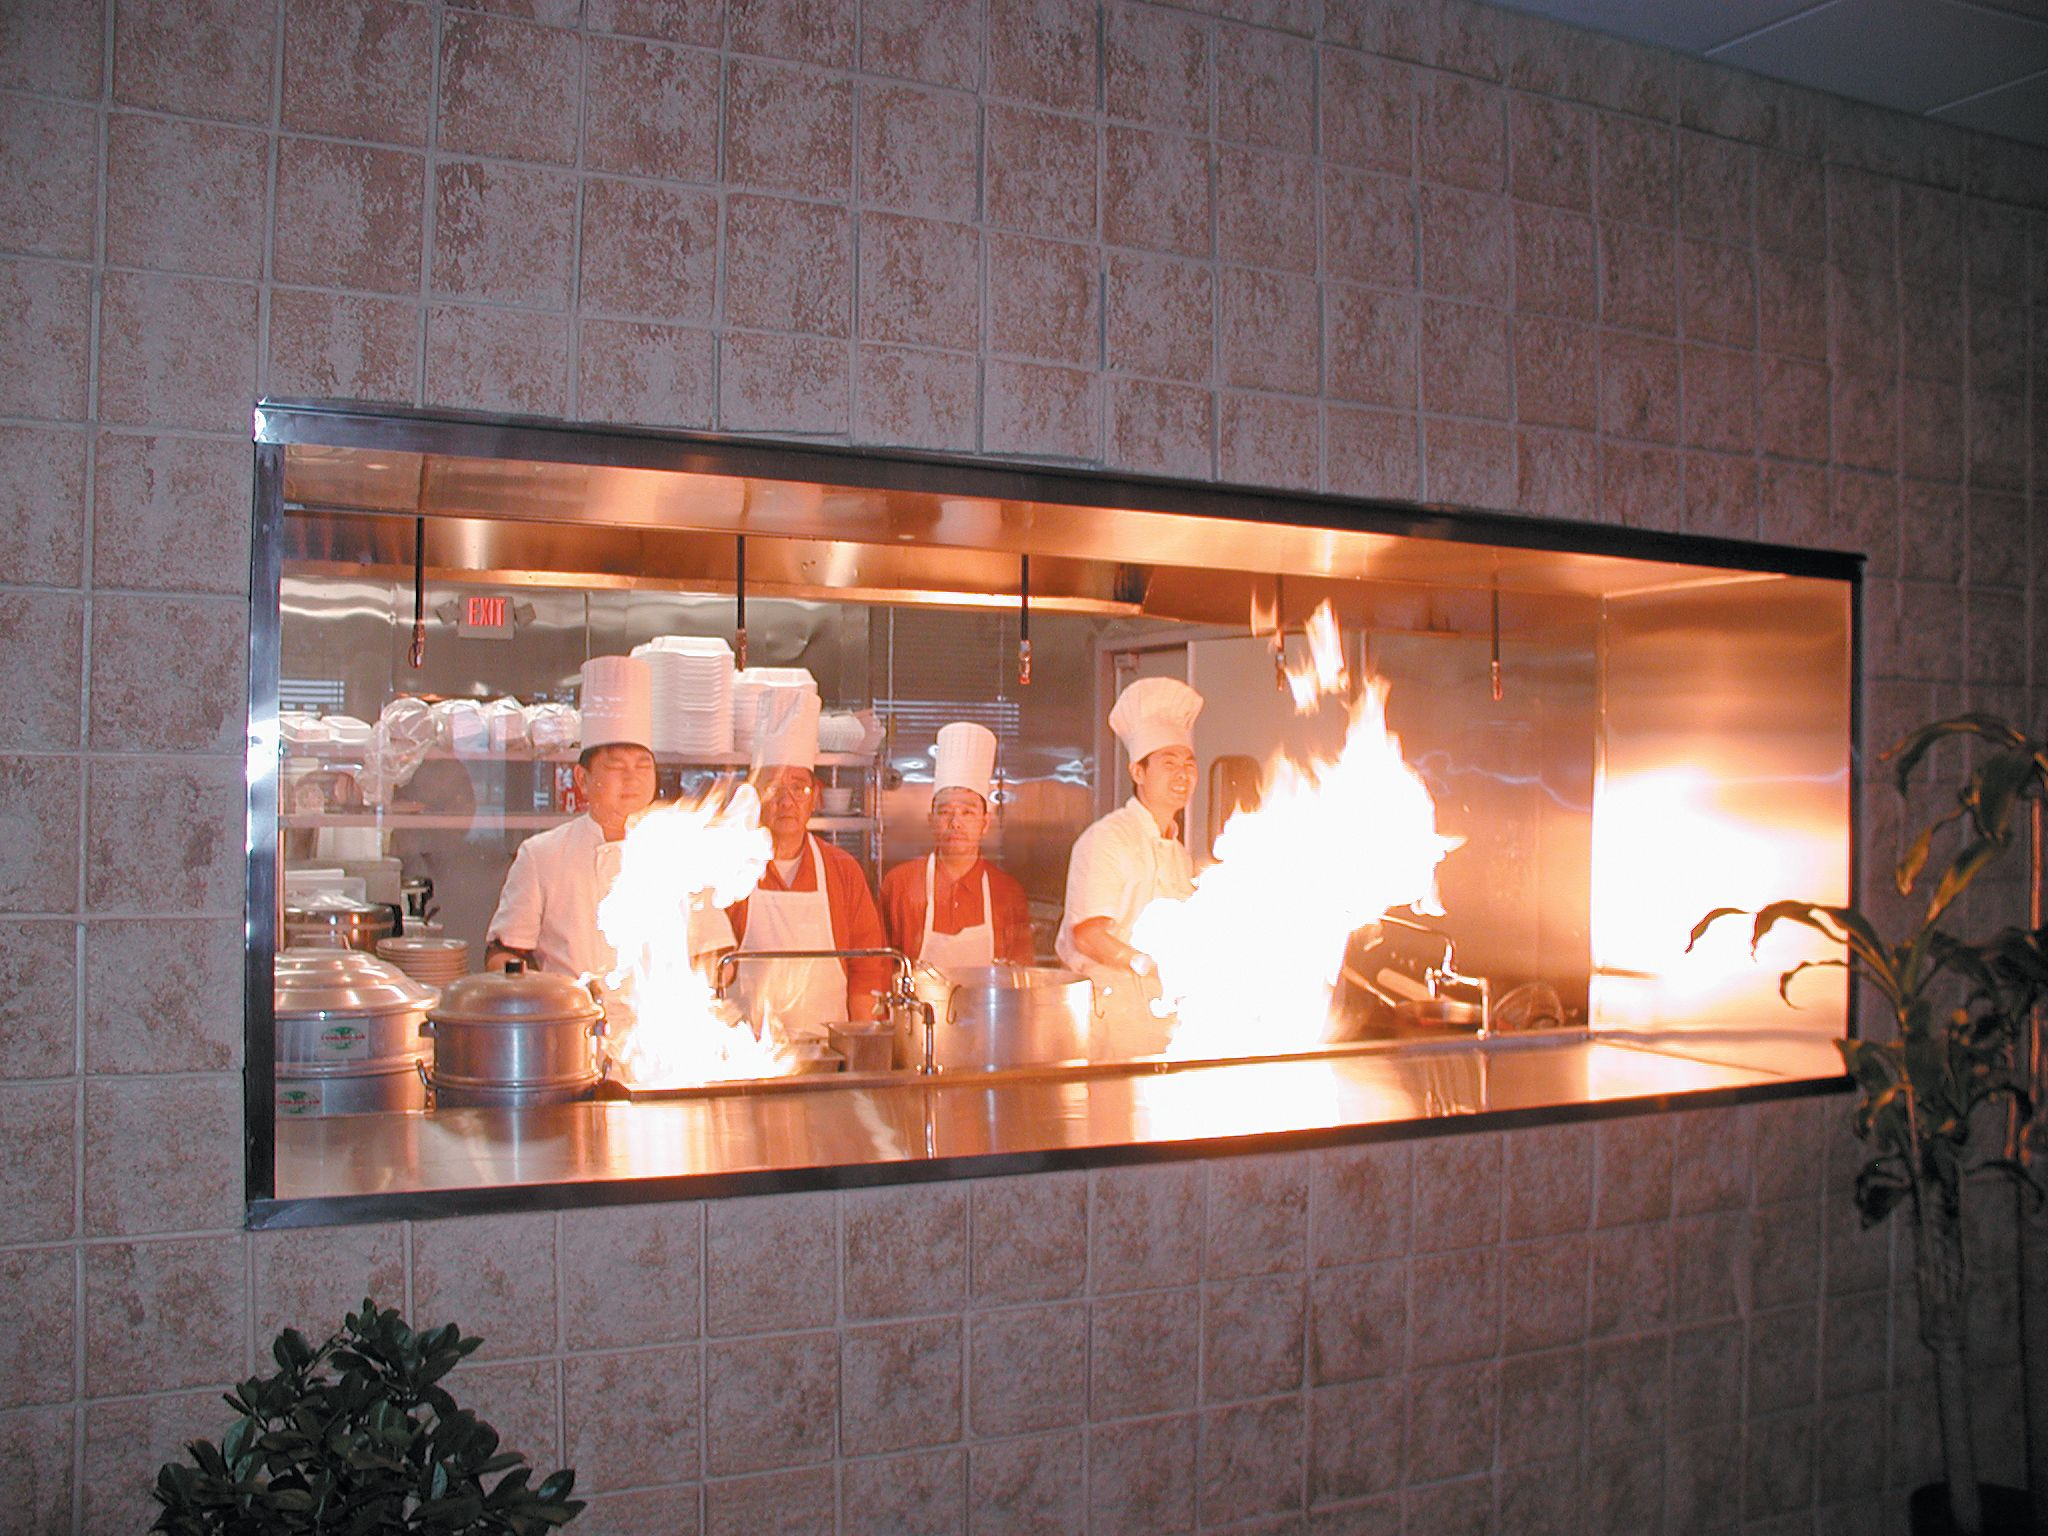 Restaurant Kitchen Pics contemporary restaurant kitchen window back wall i inside design